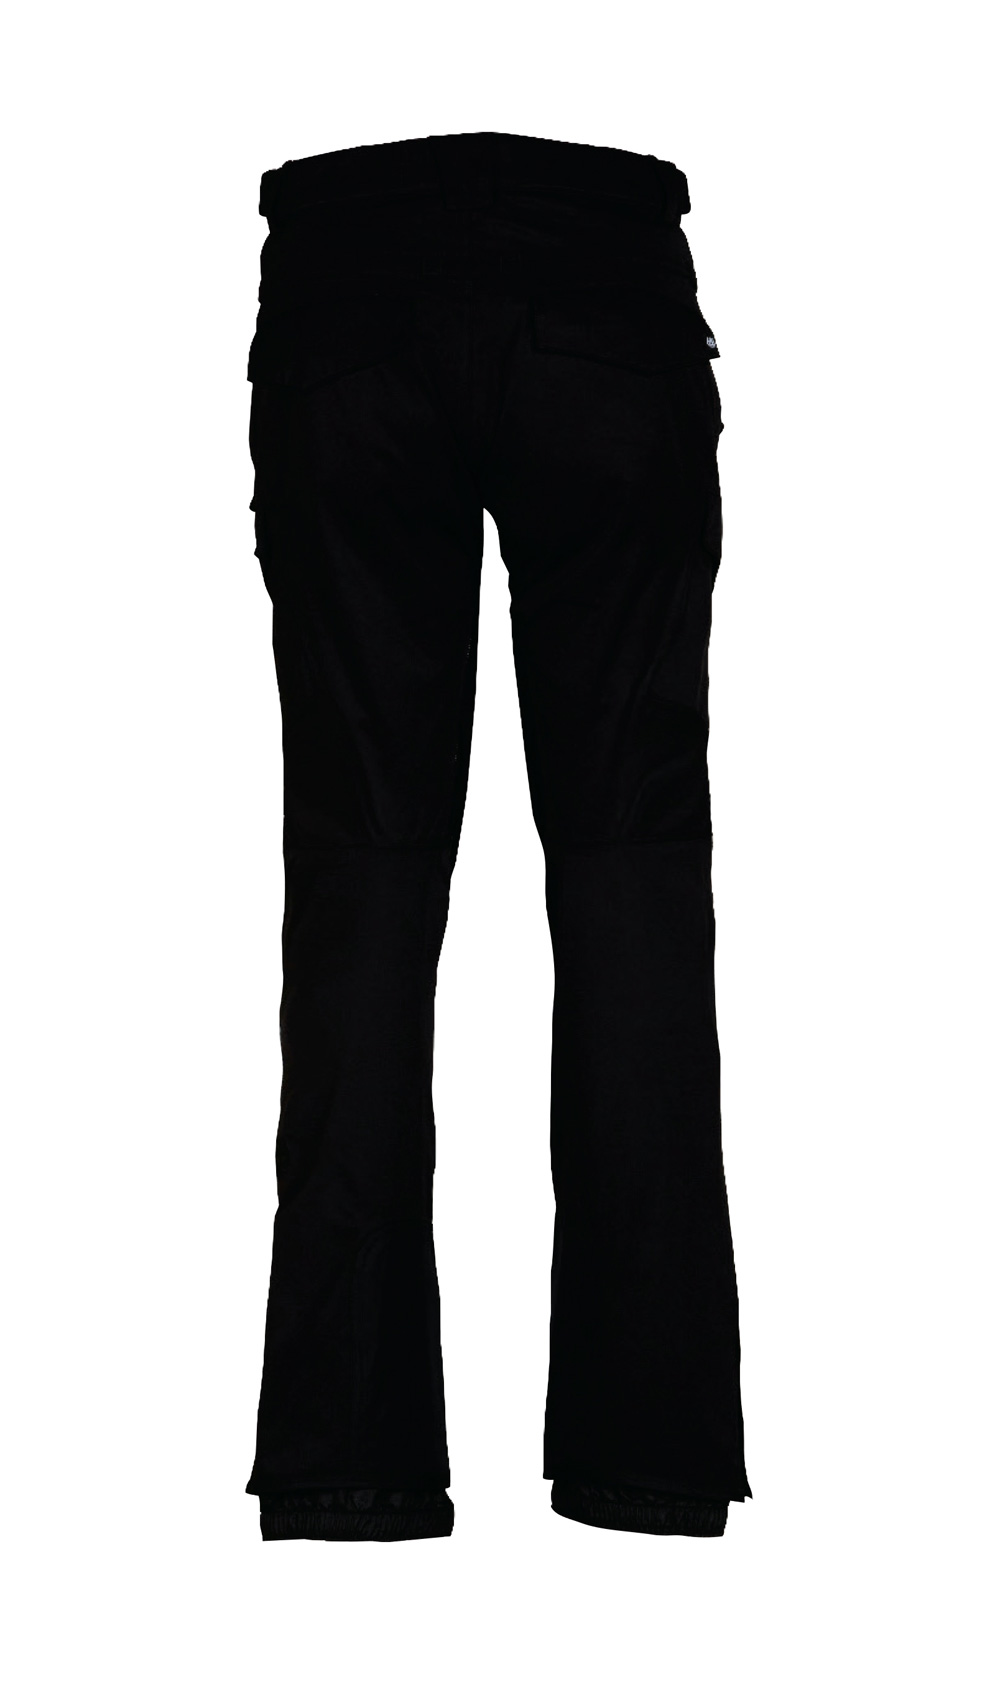 686 Womens Snowboard Pants Smarty Cargo Black Yoga